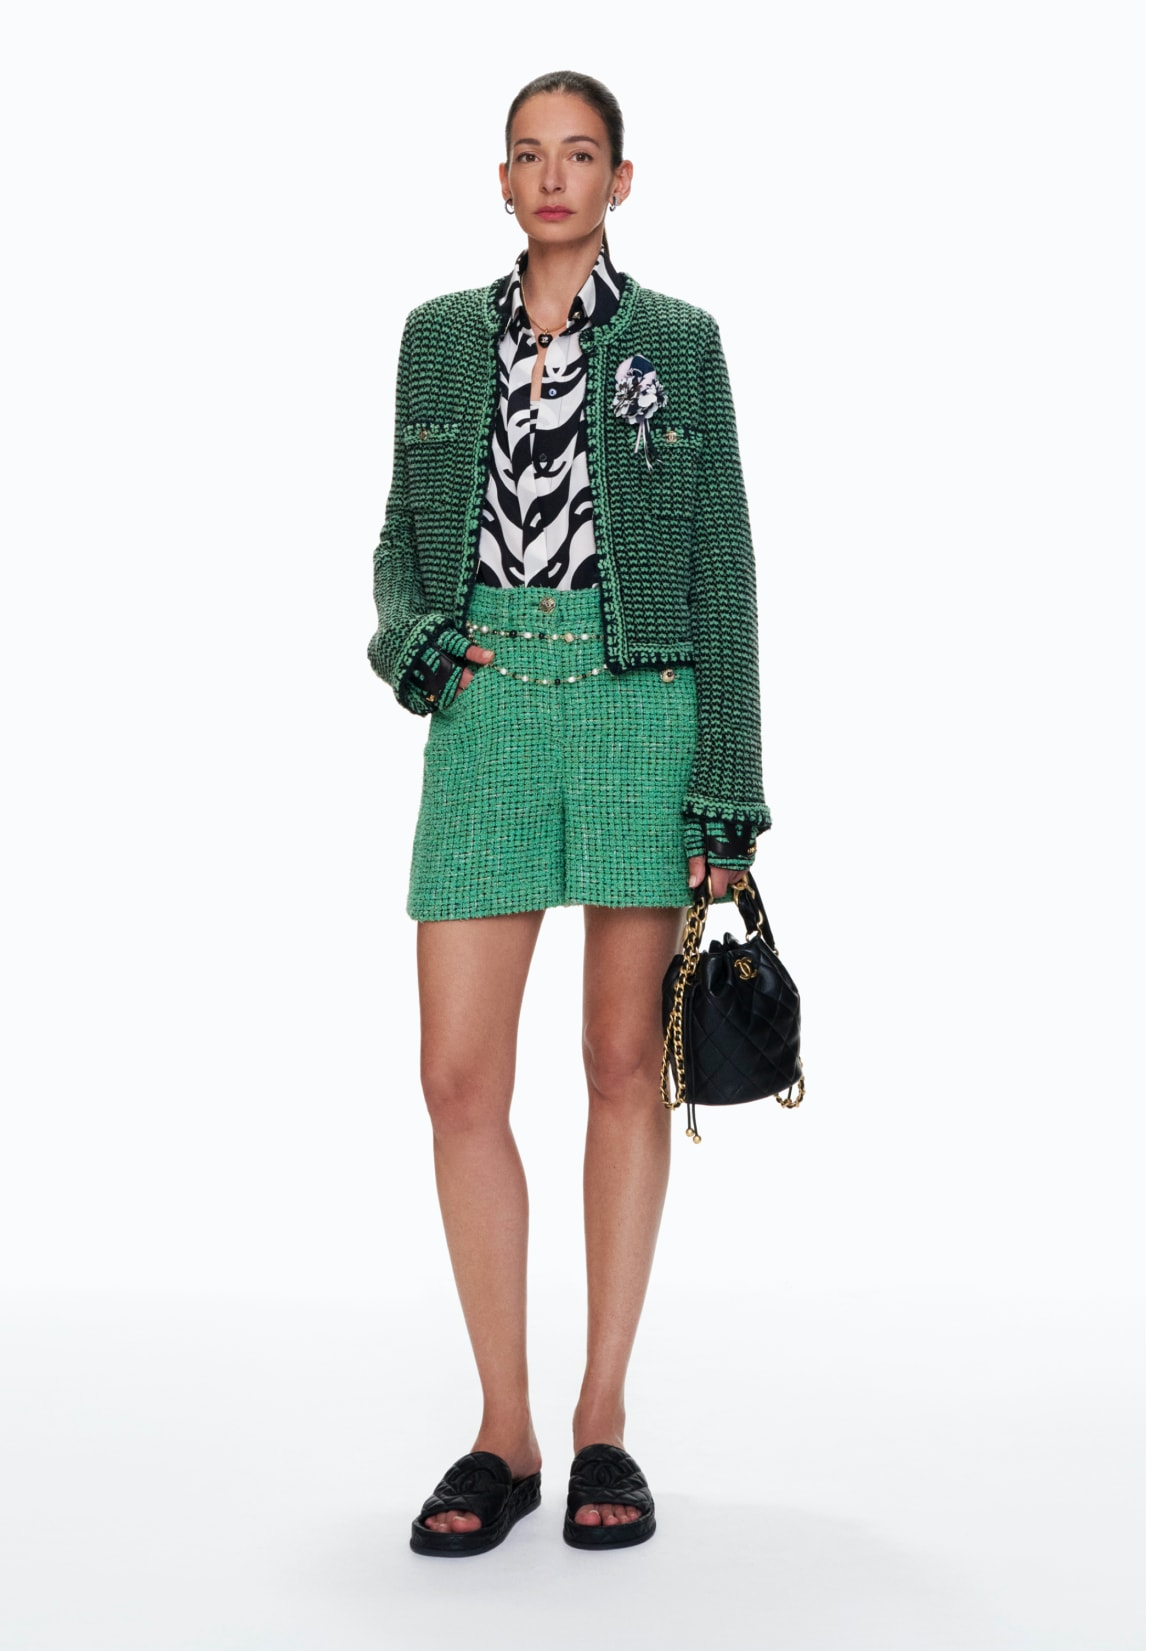 Image 1 - Look 10